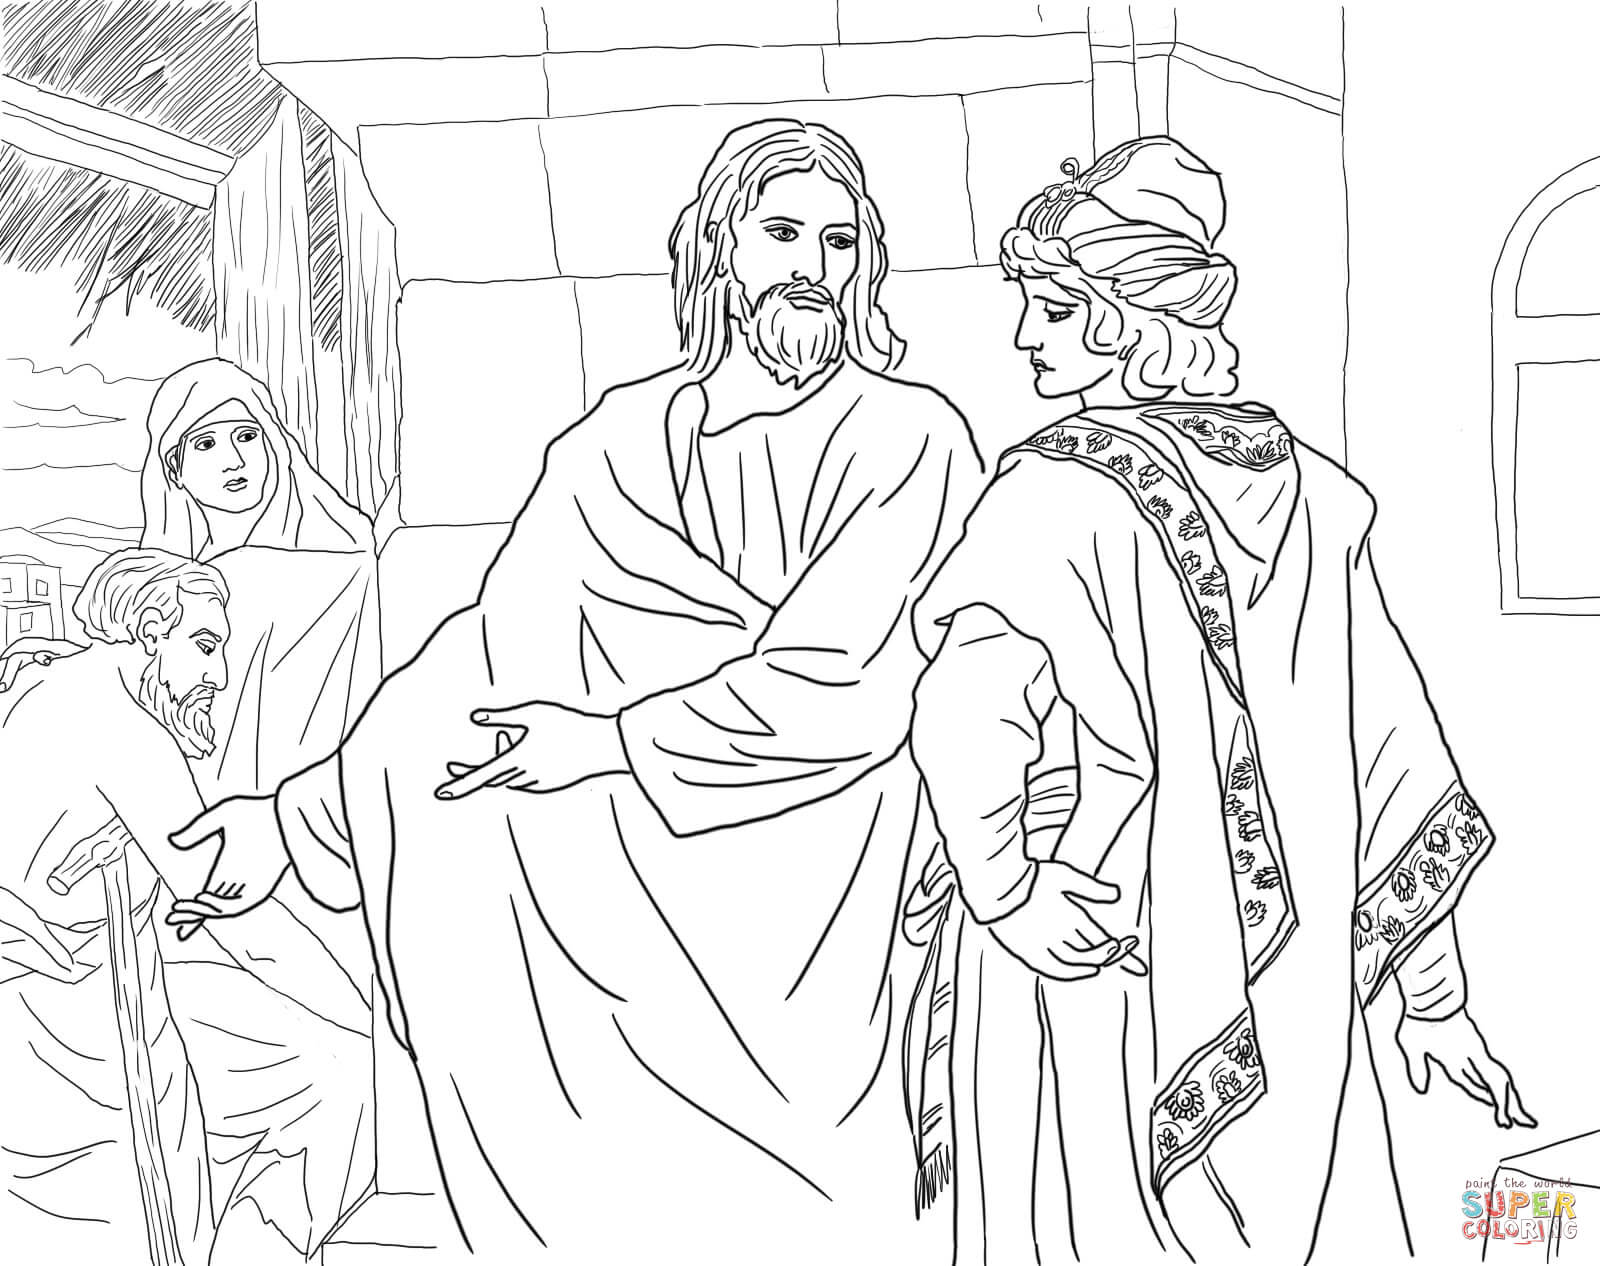 jesus for coloring jesus for coloring coloring jesus for